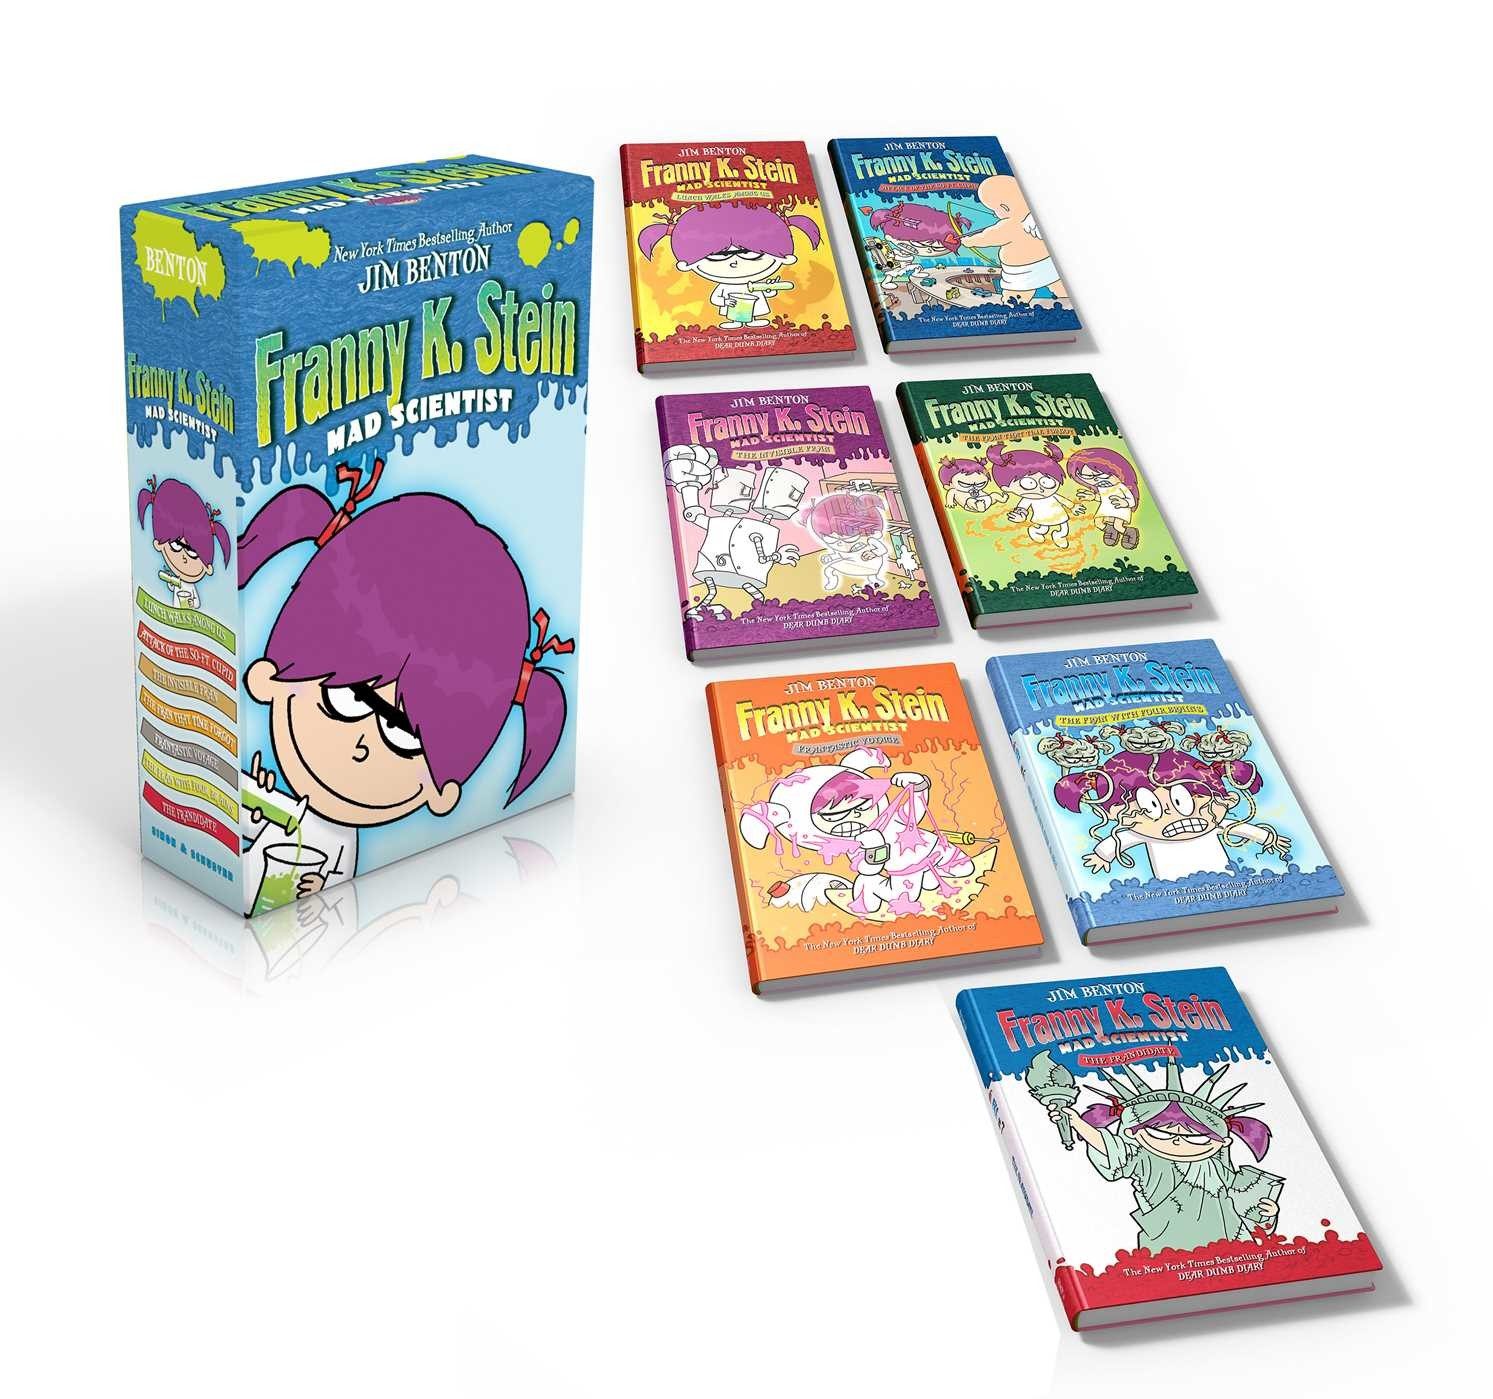 The complete franny k stein mad scientist 9781442474246.in02